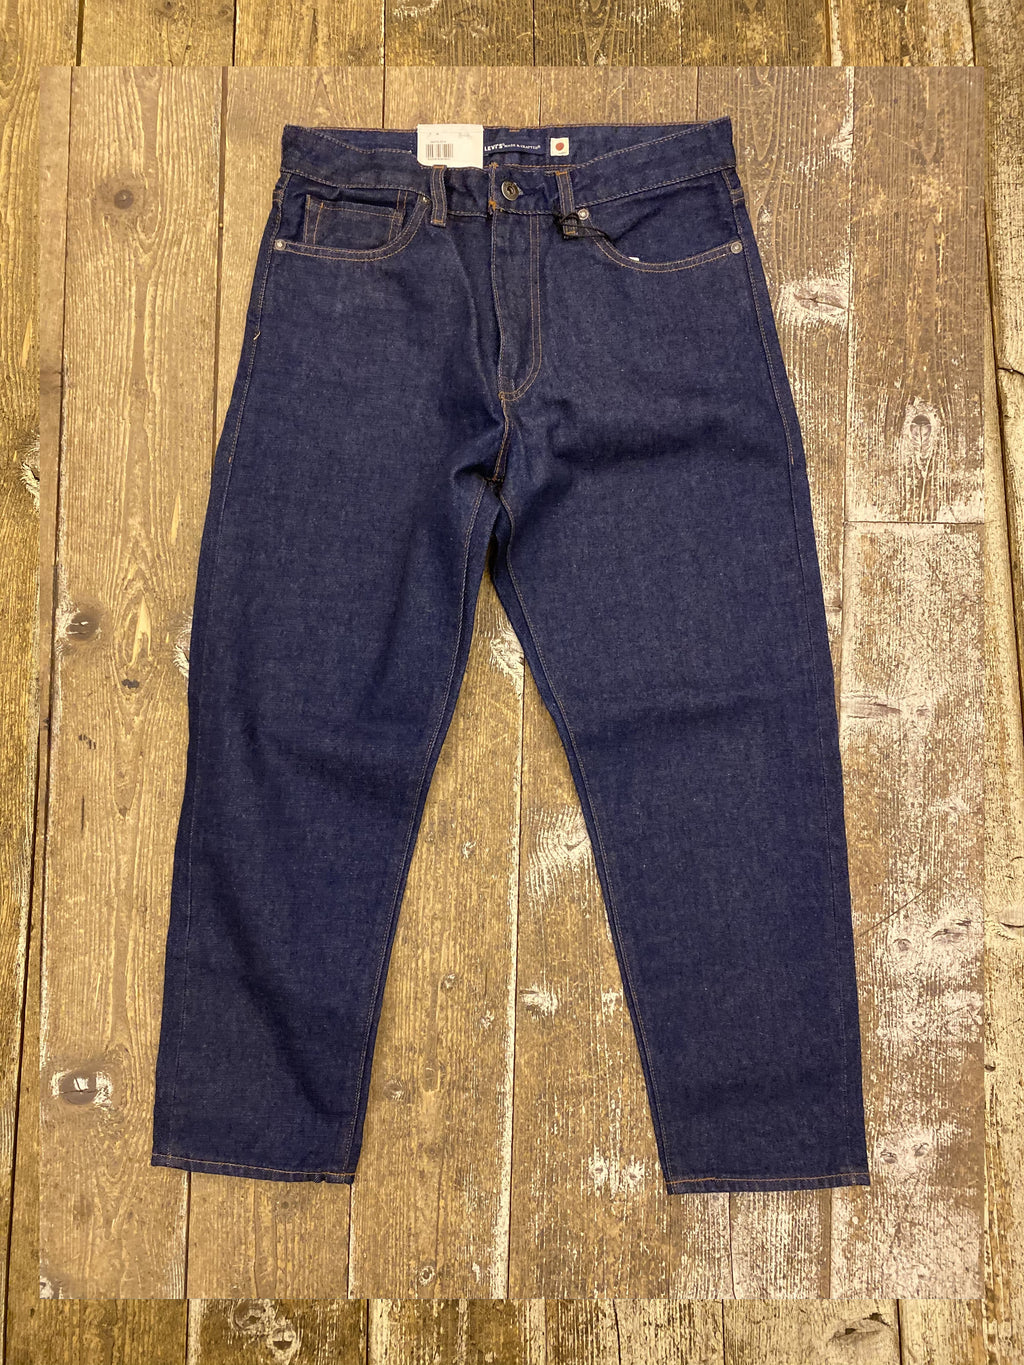 Draft Taper -  Dark Wash LEVI's Made and Crafted